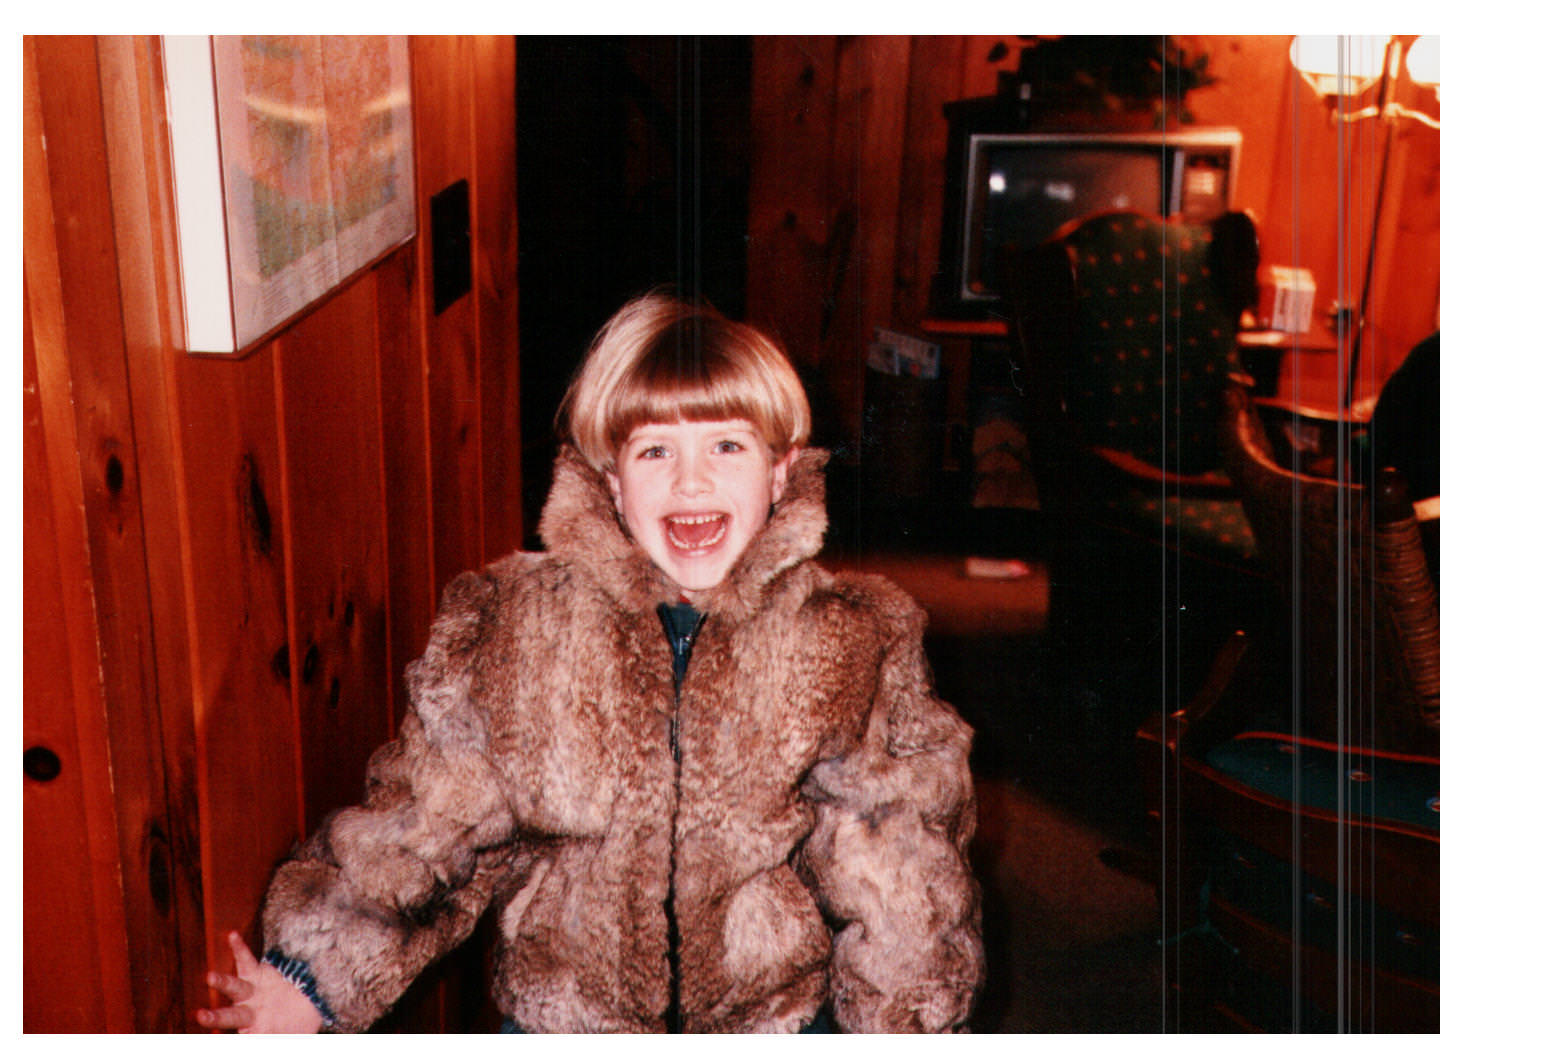 Fur coat, coat, bowl cut, little girl, happy girl, Molly Graves, Molly Heffinger Graves, Wisconsin, Boulder Junction, White Sand Lake